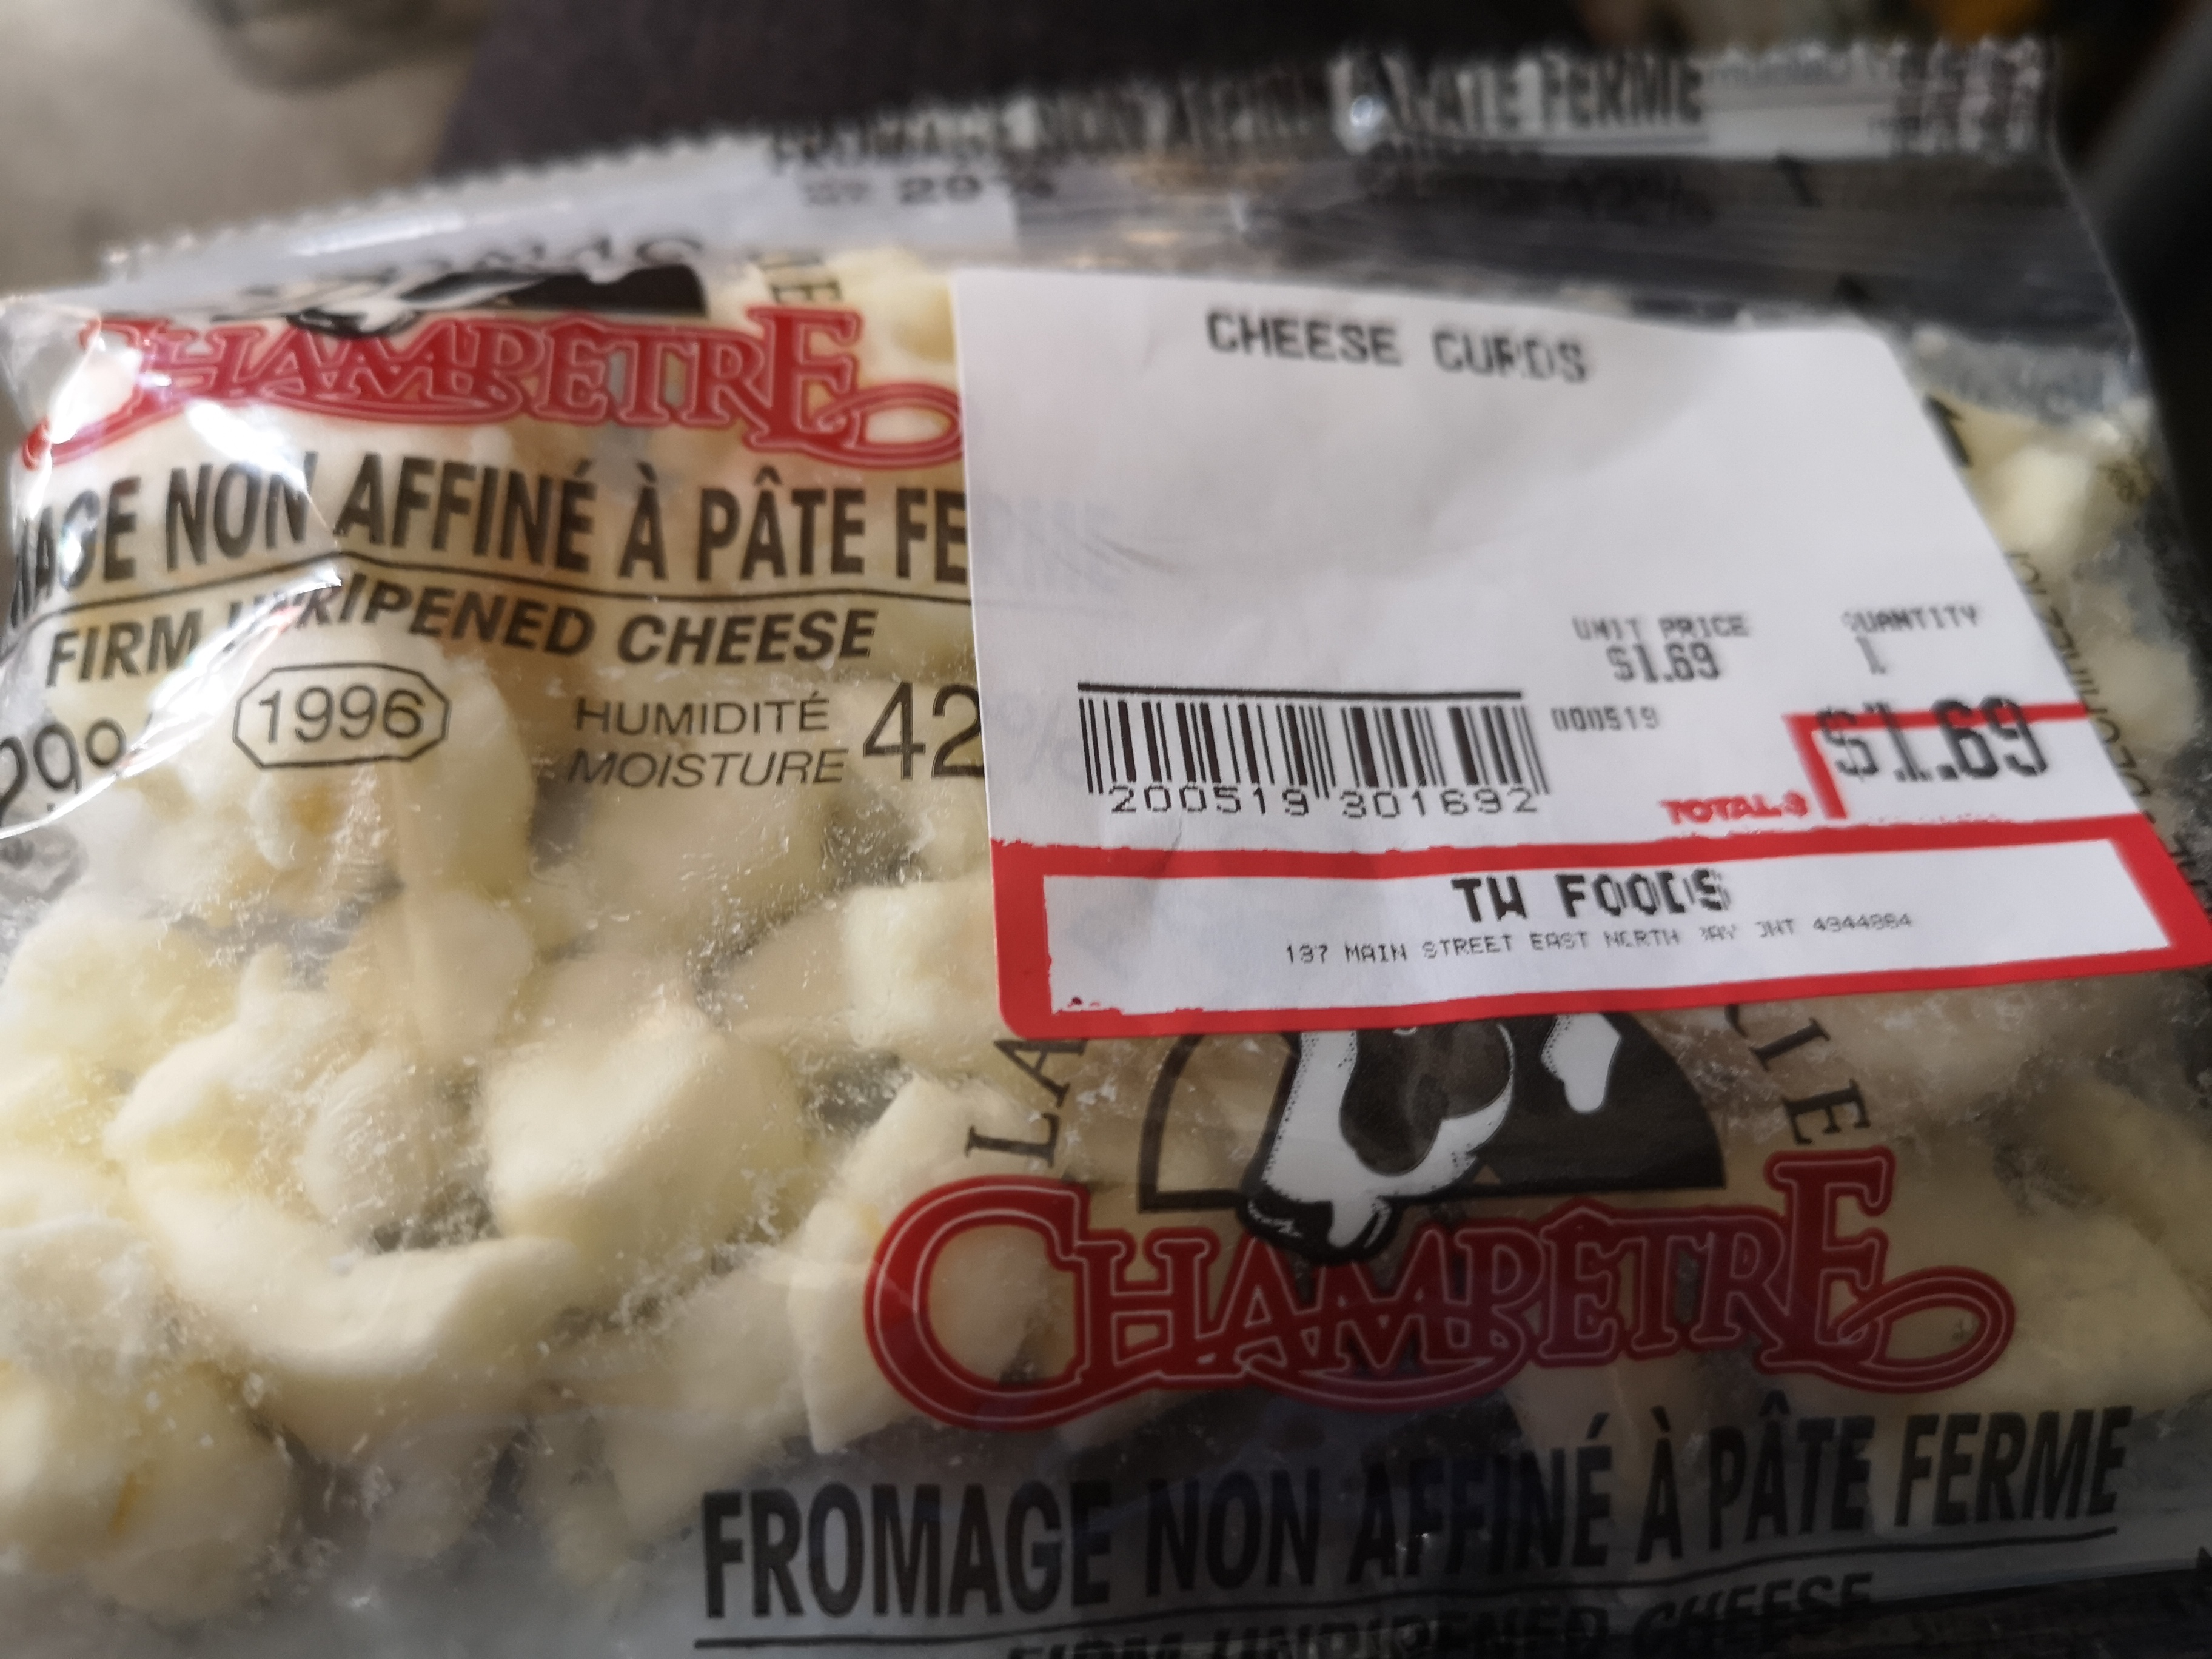 Champetre Cheese Curds